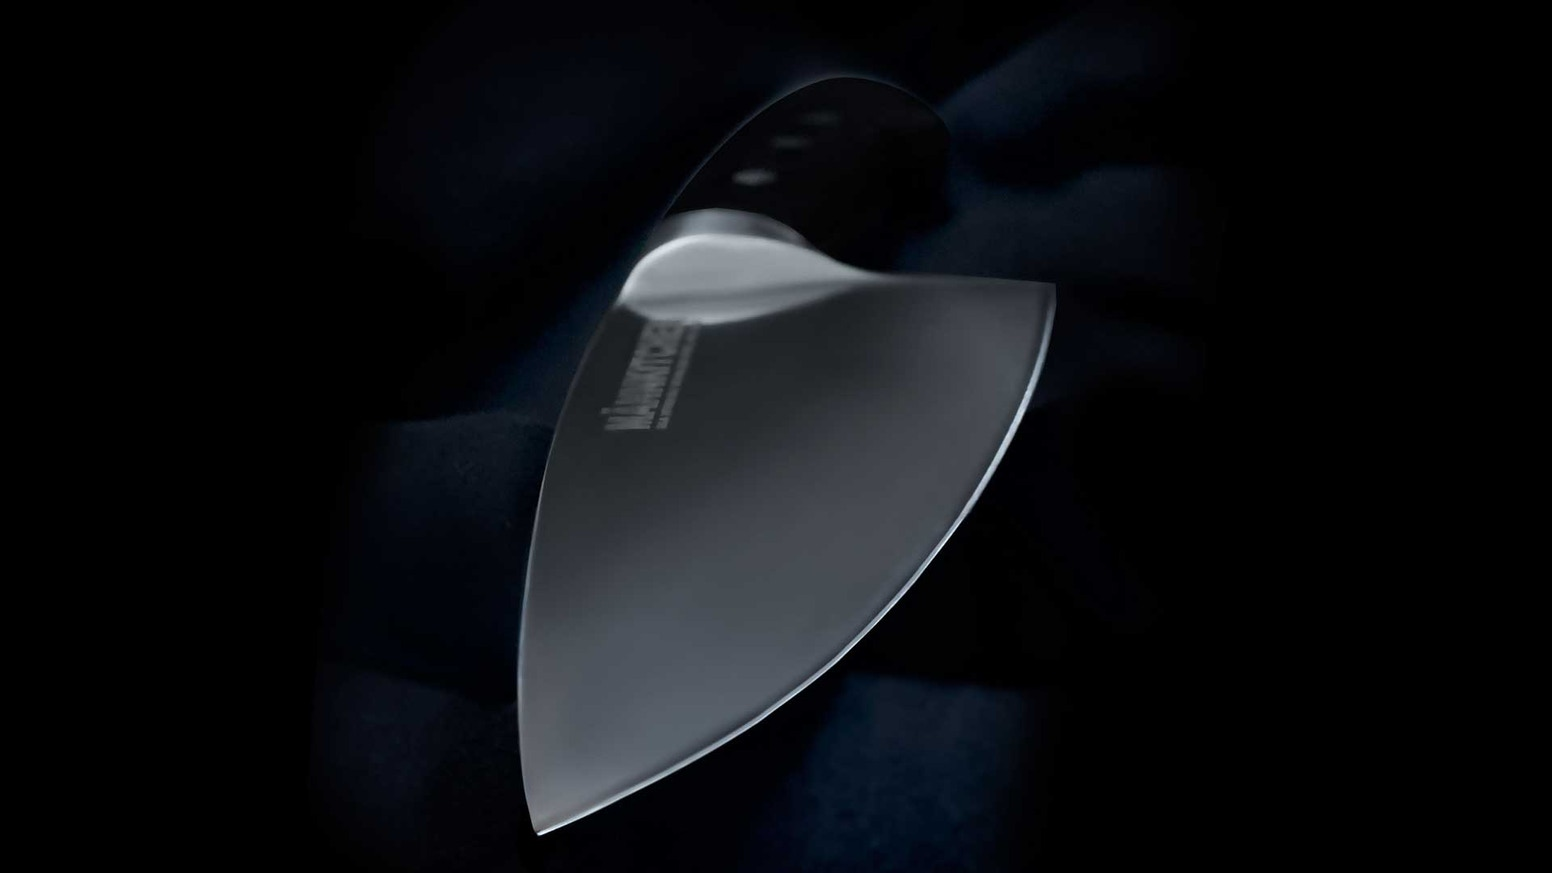 Since 1965 the number of men who cook at home in the US has grown by 44.8%.  Learn how the MK9 chef knife is different.